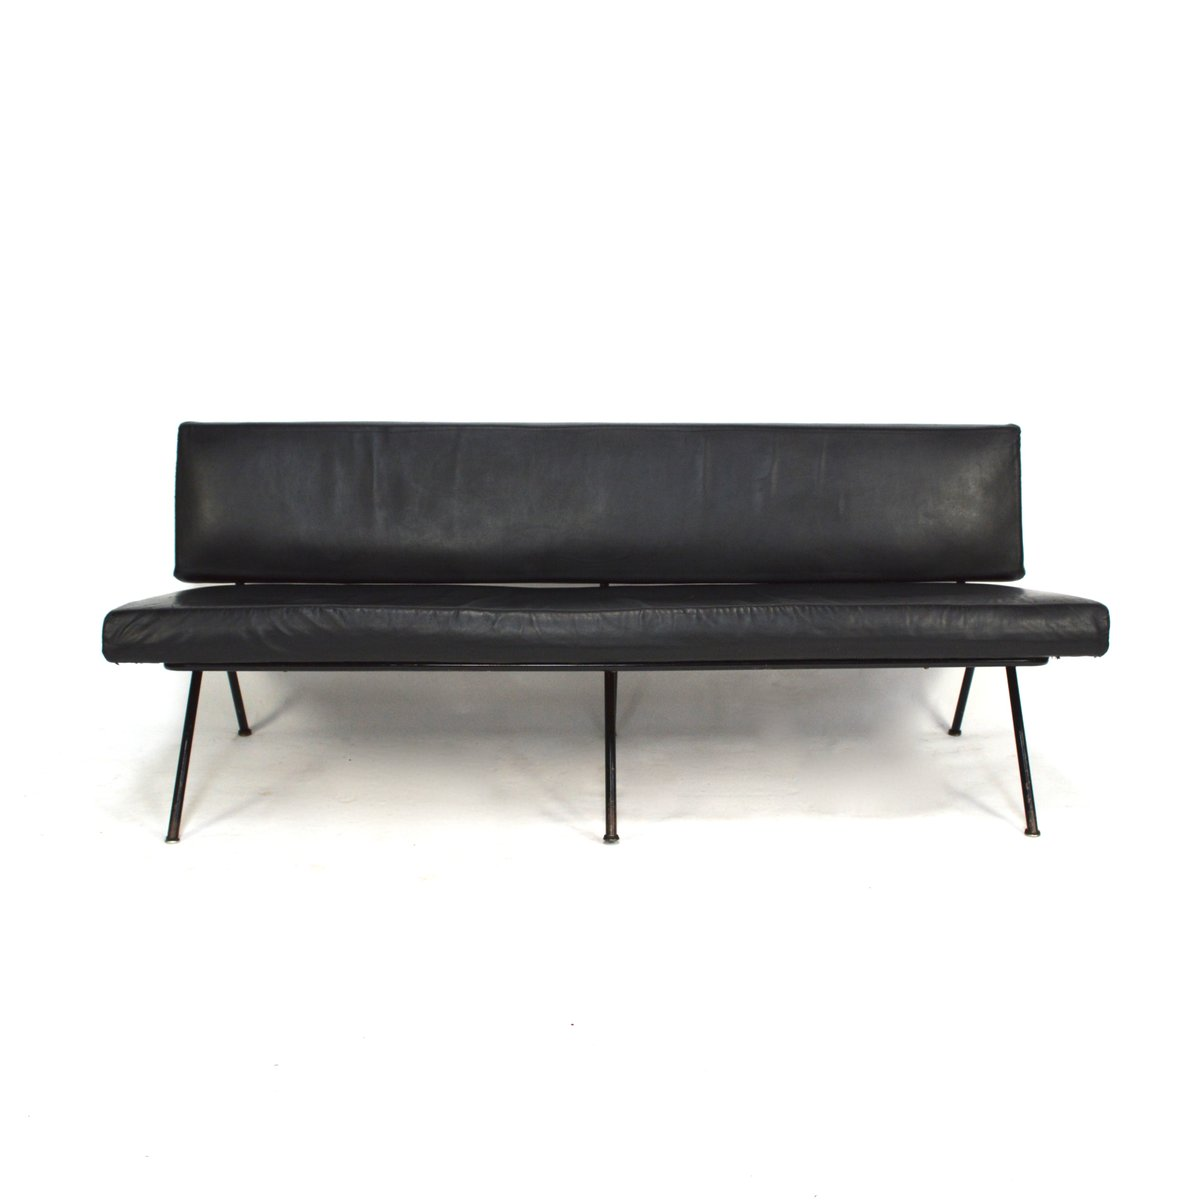 Model 32 Sofa By Florence Knoll For Knoll Inc., 1950s